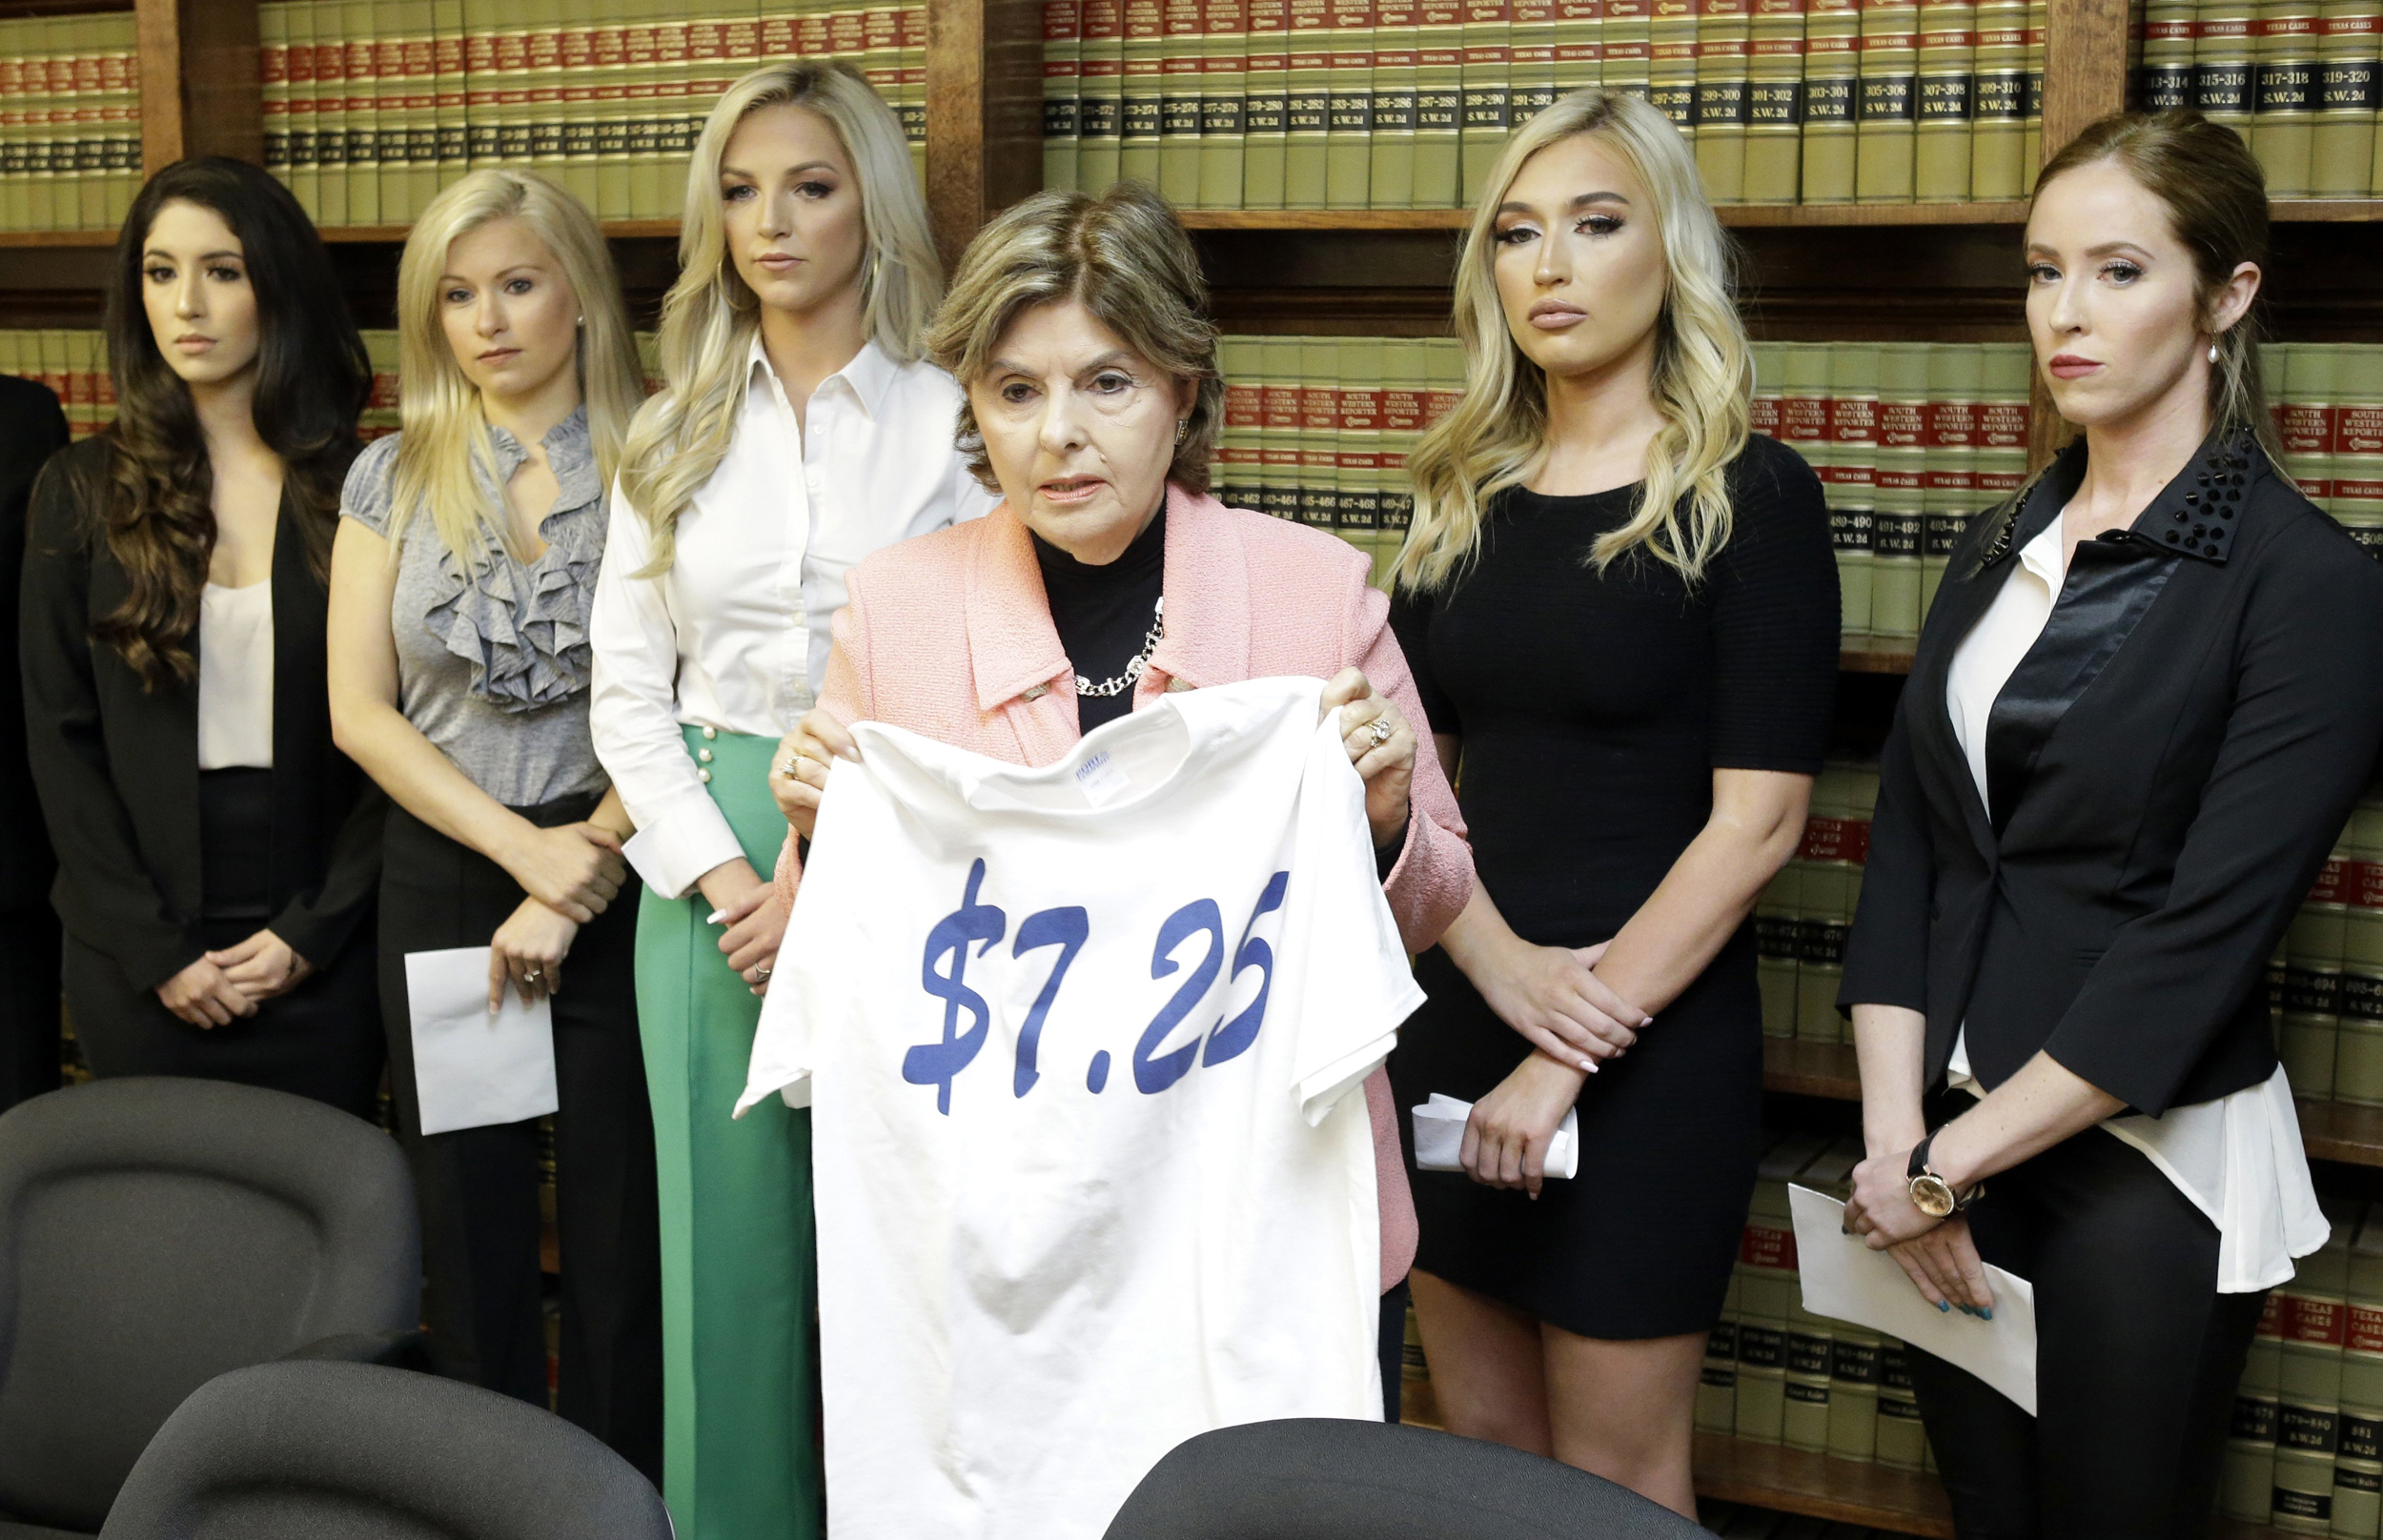 230e260e 5 former Houston Texans cheerleaders sue team over low pay, harassment